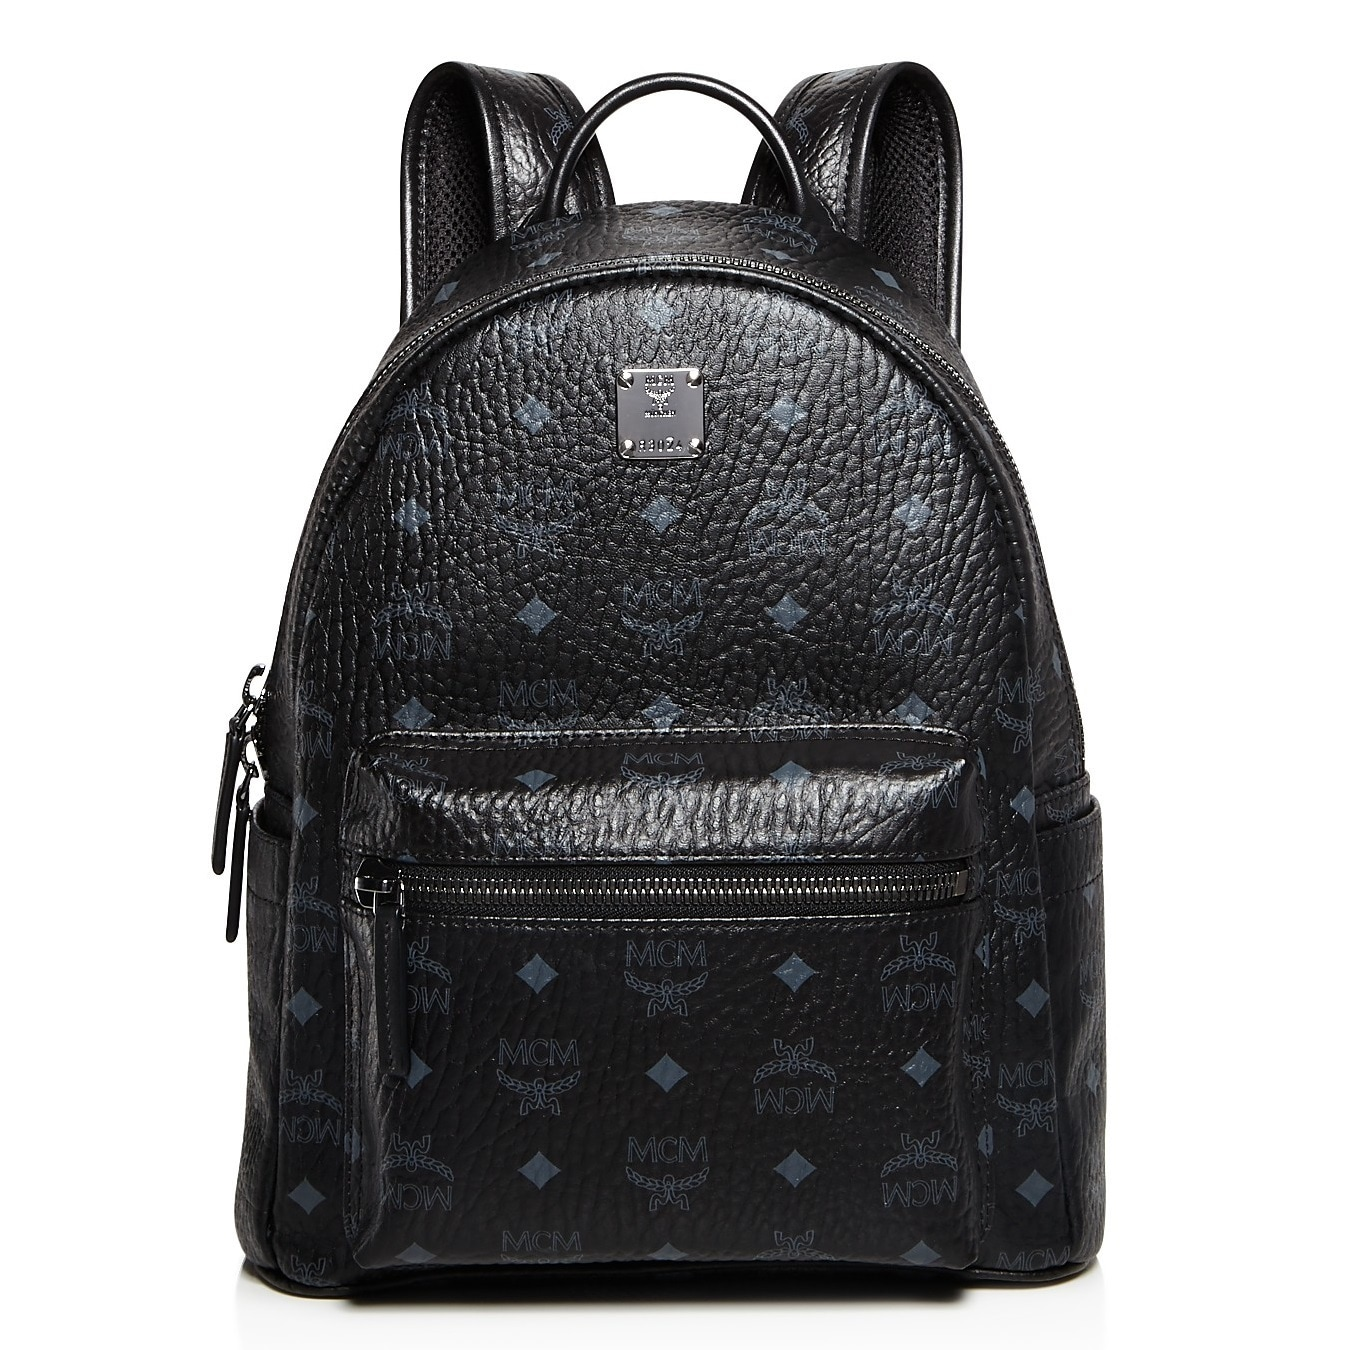 79c00187d5d Shop MCM Stark Medium Black Backpack - On Sale - Free Shipping Today -  Overstock - 20175456